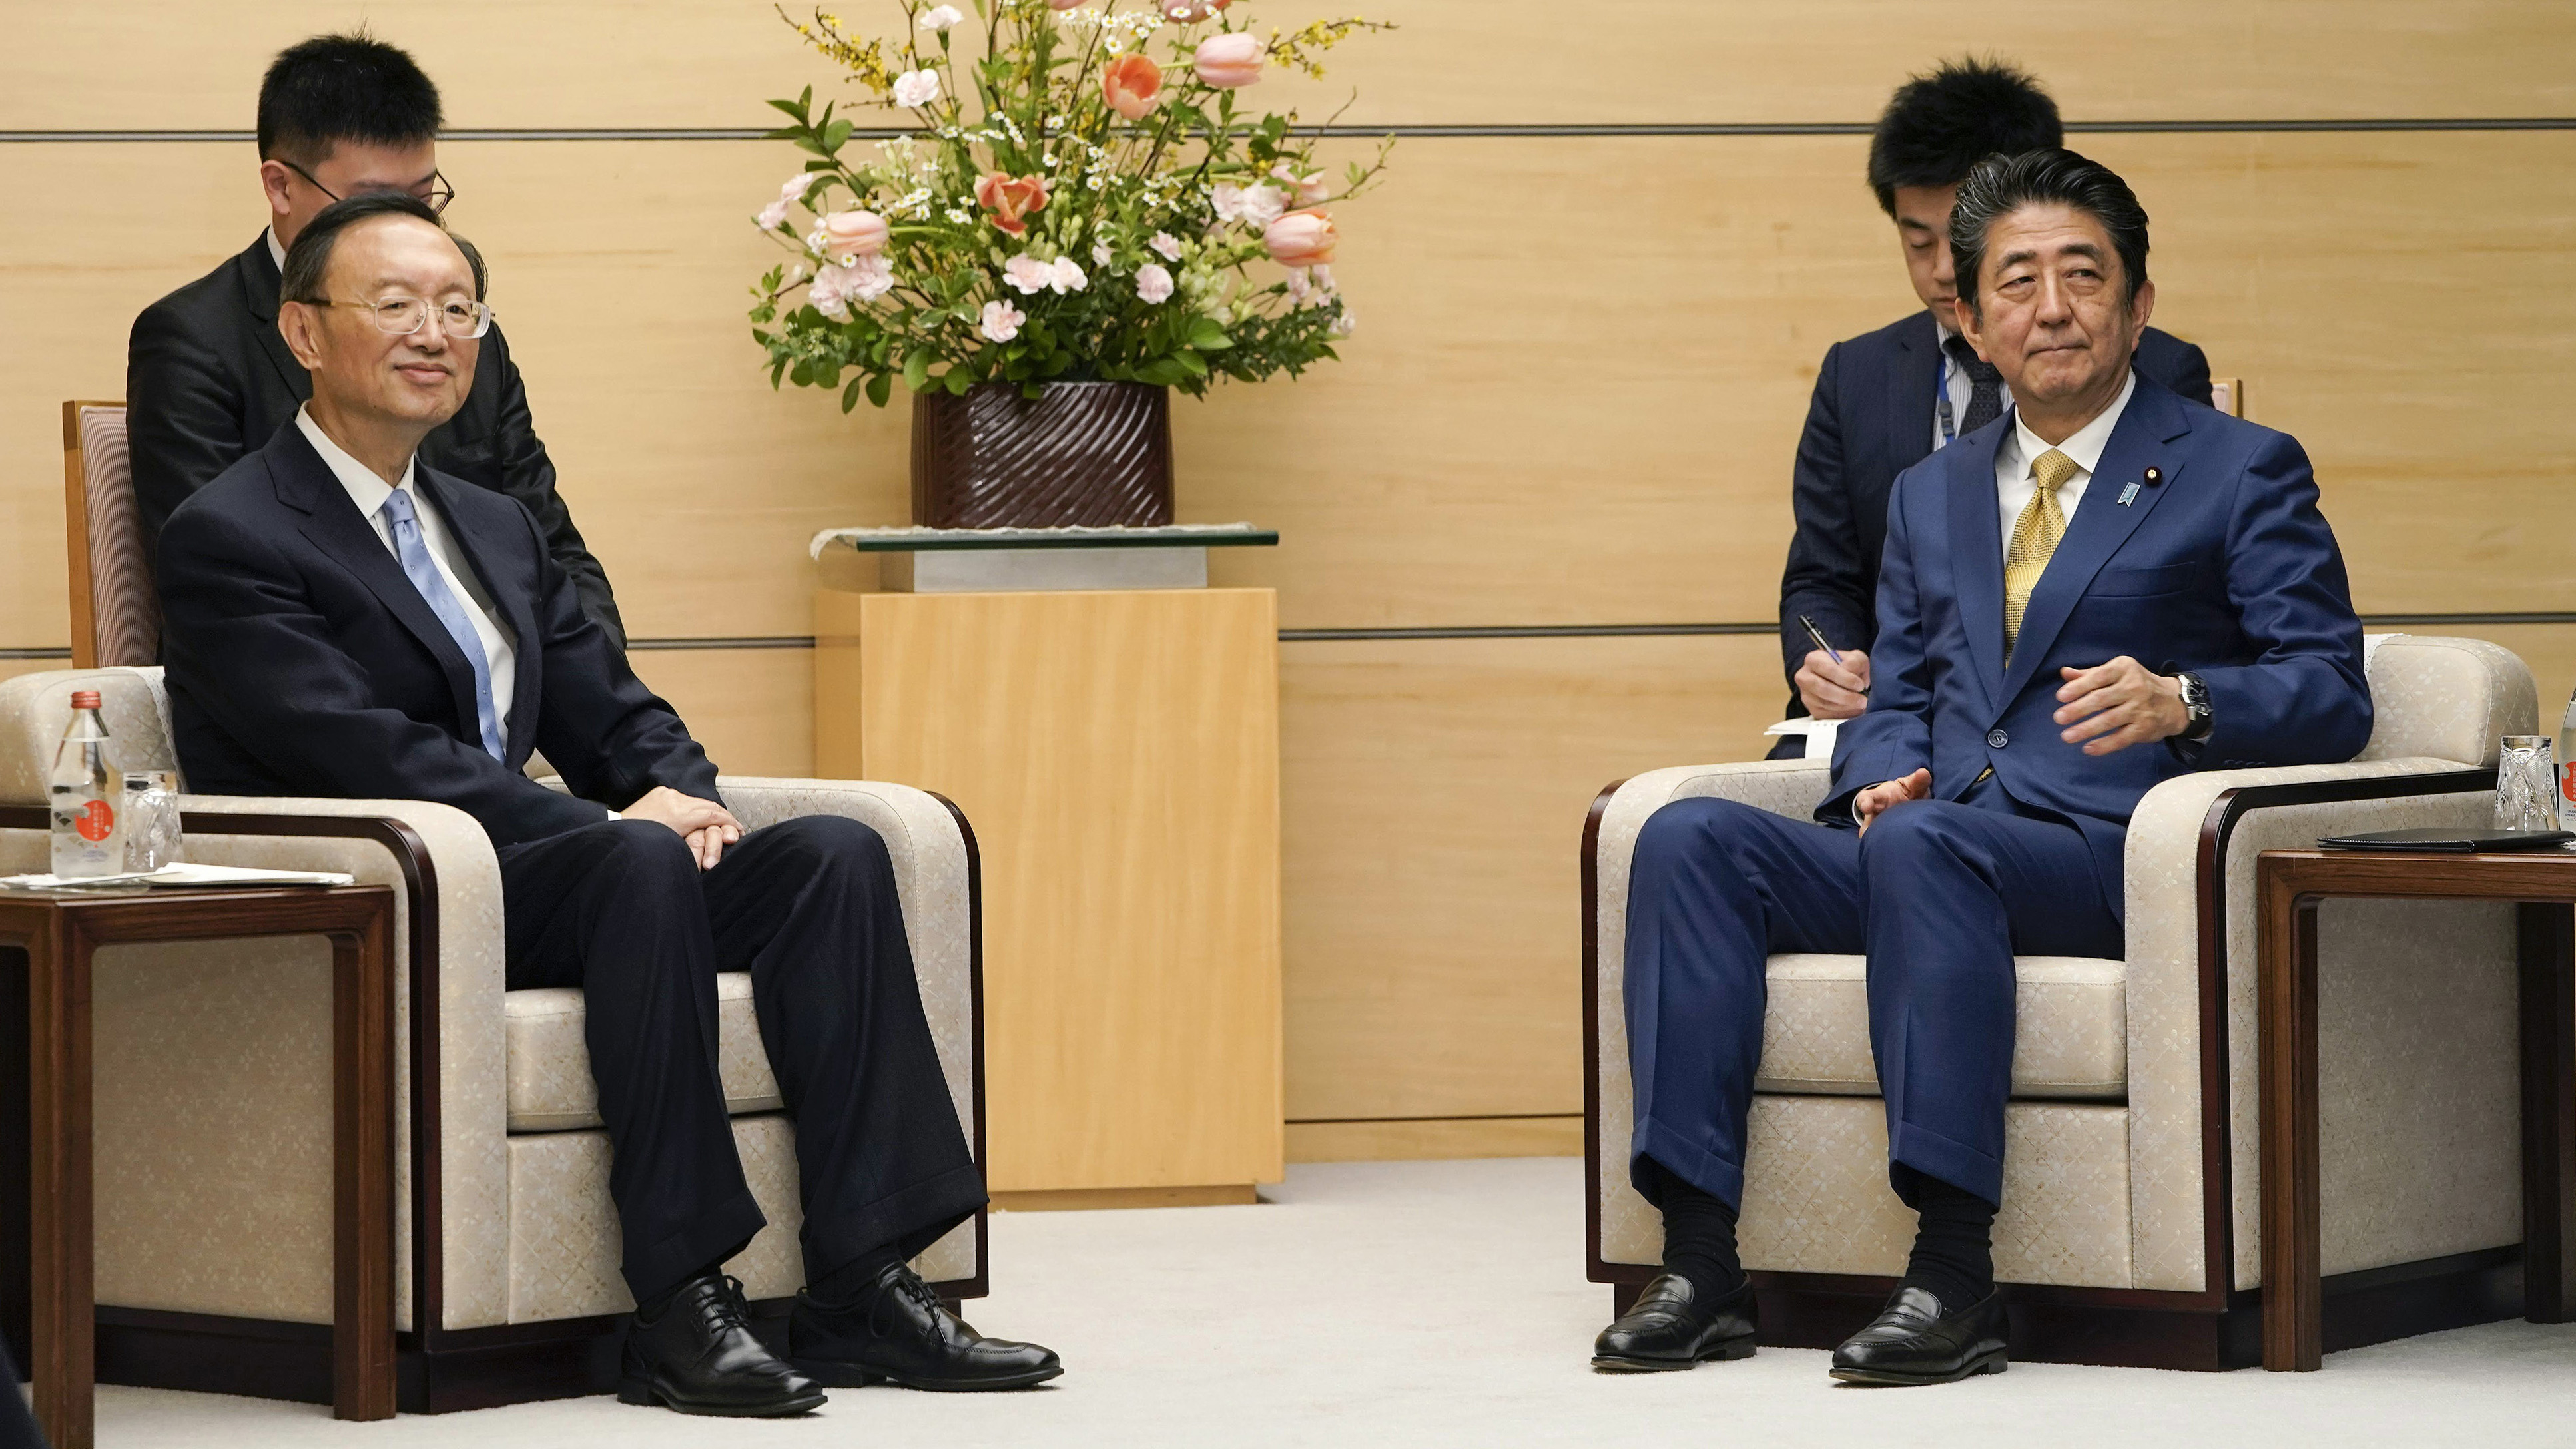 China will remain communication with Japan on Xi's visit to Japan